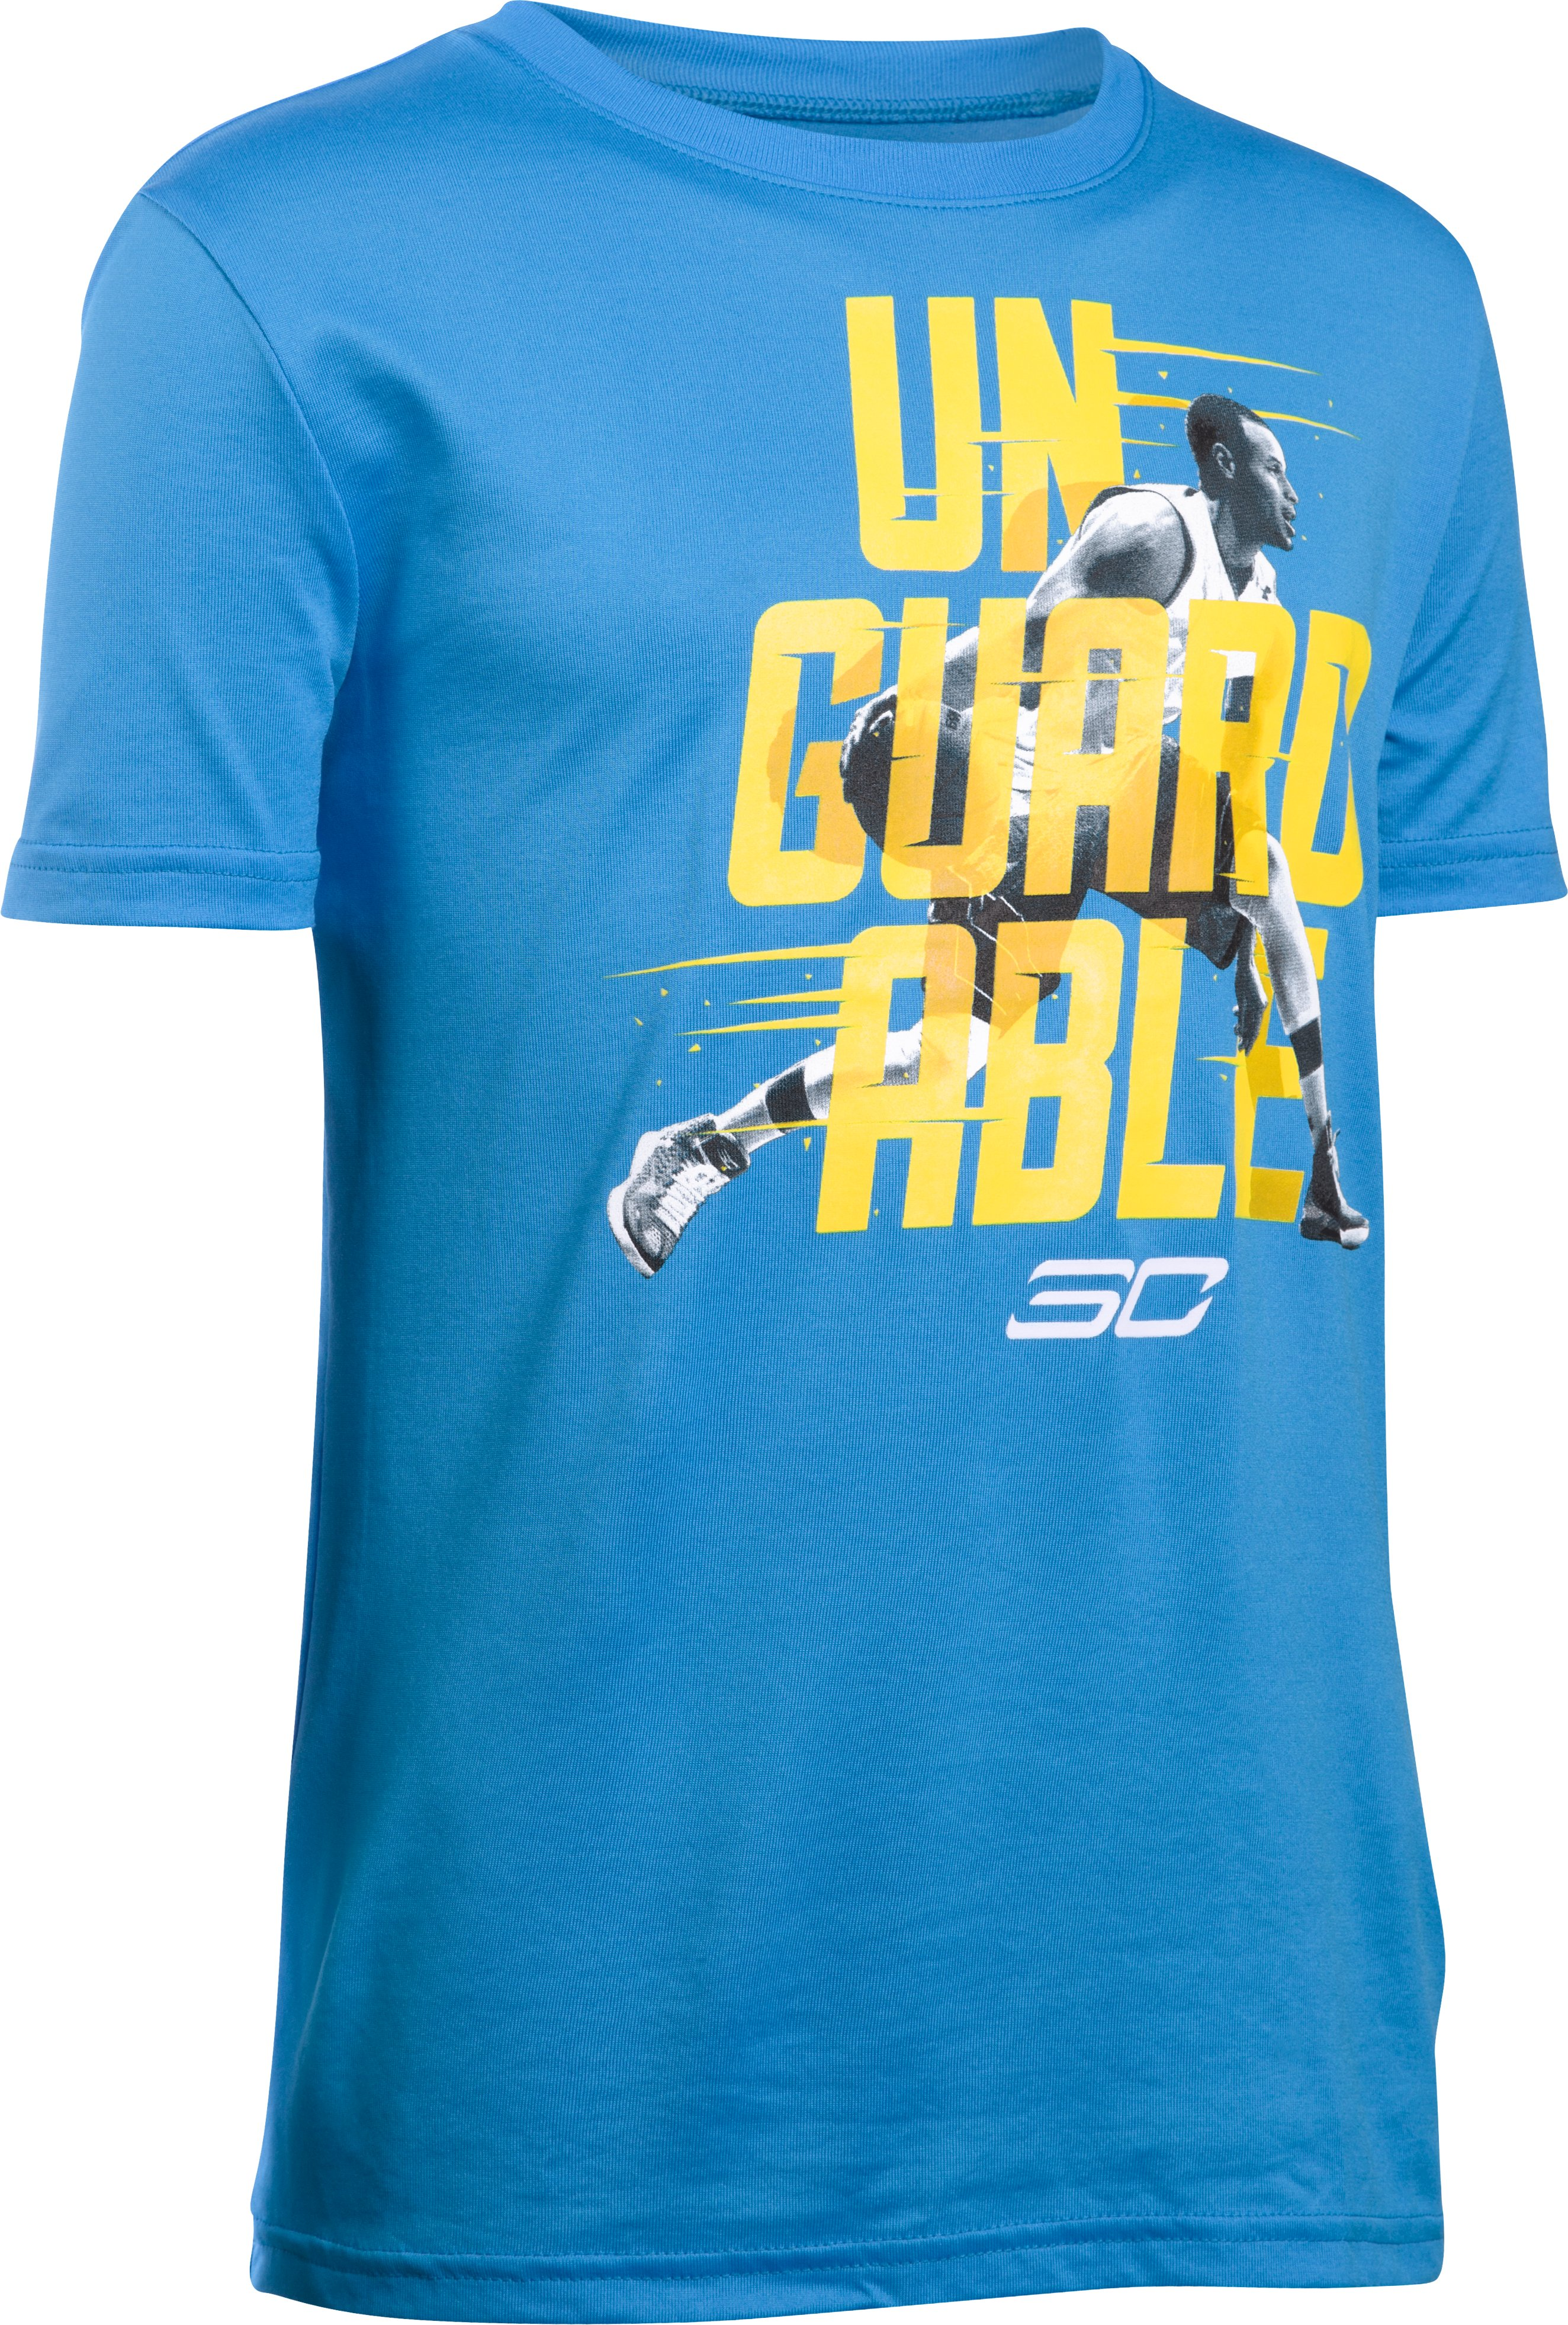 Boys' SC30 Unguardable T-Shirt, ELECTRIC BLUE, undefined